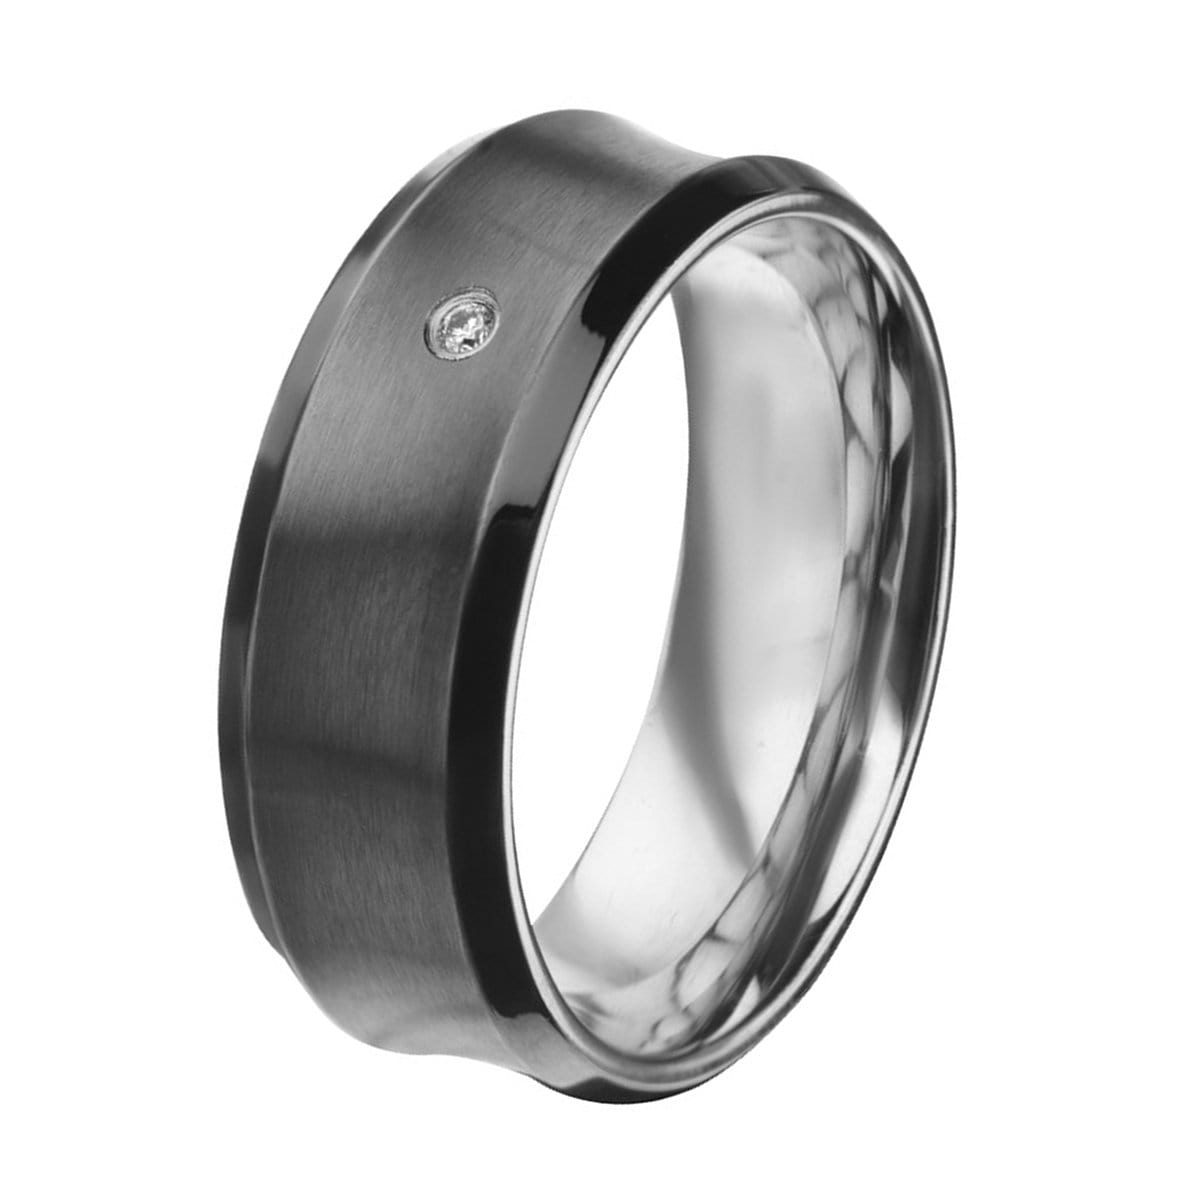 Black & Silver Stainless Steel Brushed White CZ Ring Rings